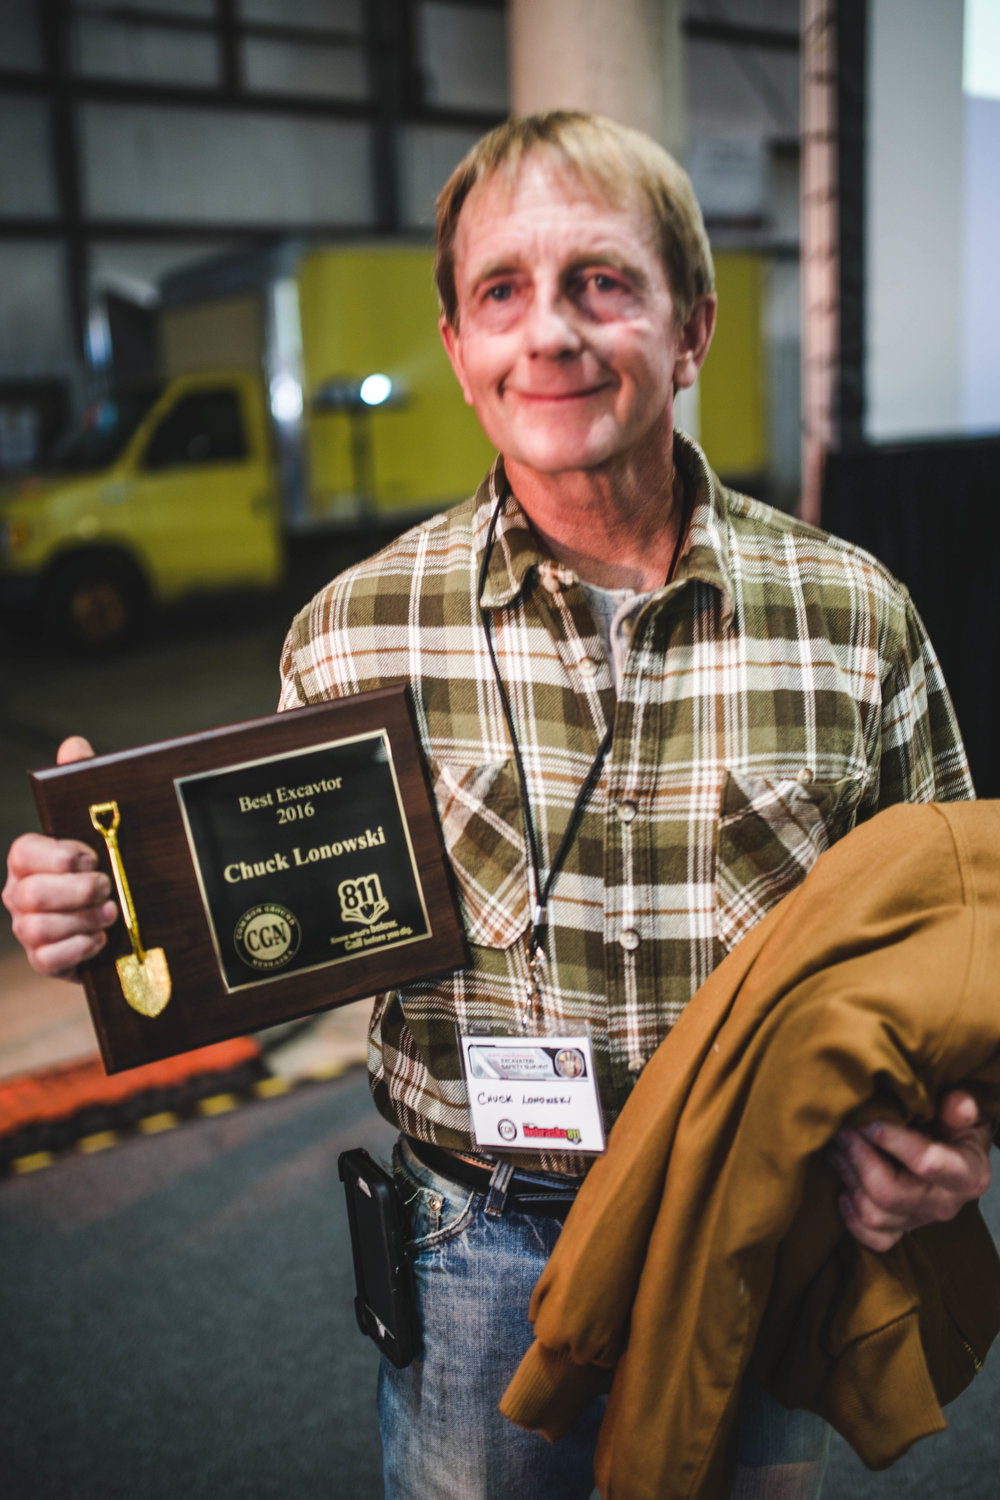 2016 - Chuck lonowski, d&a trenching - excavator of the year